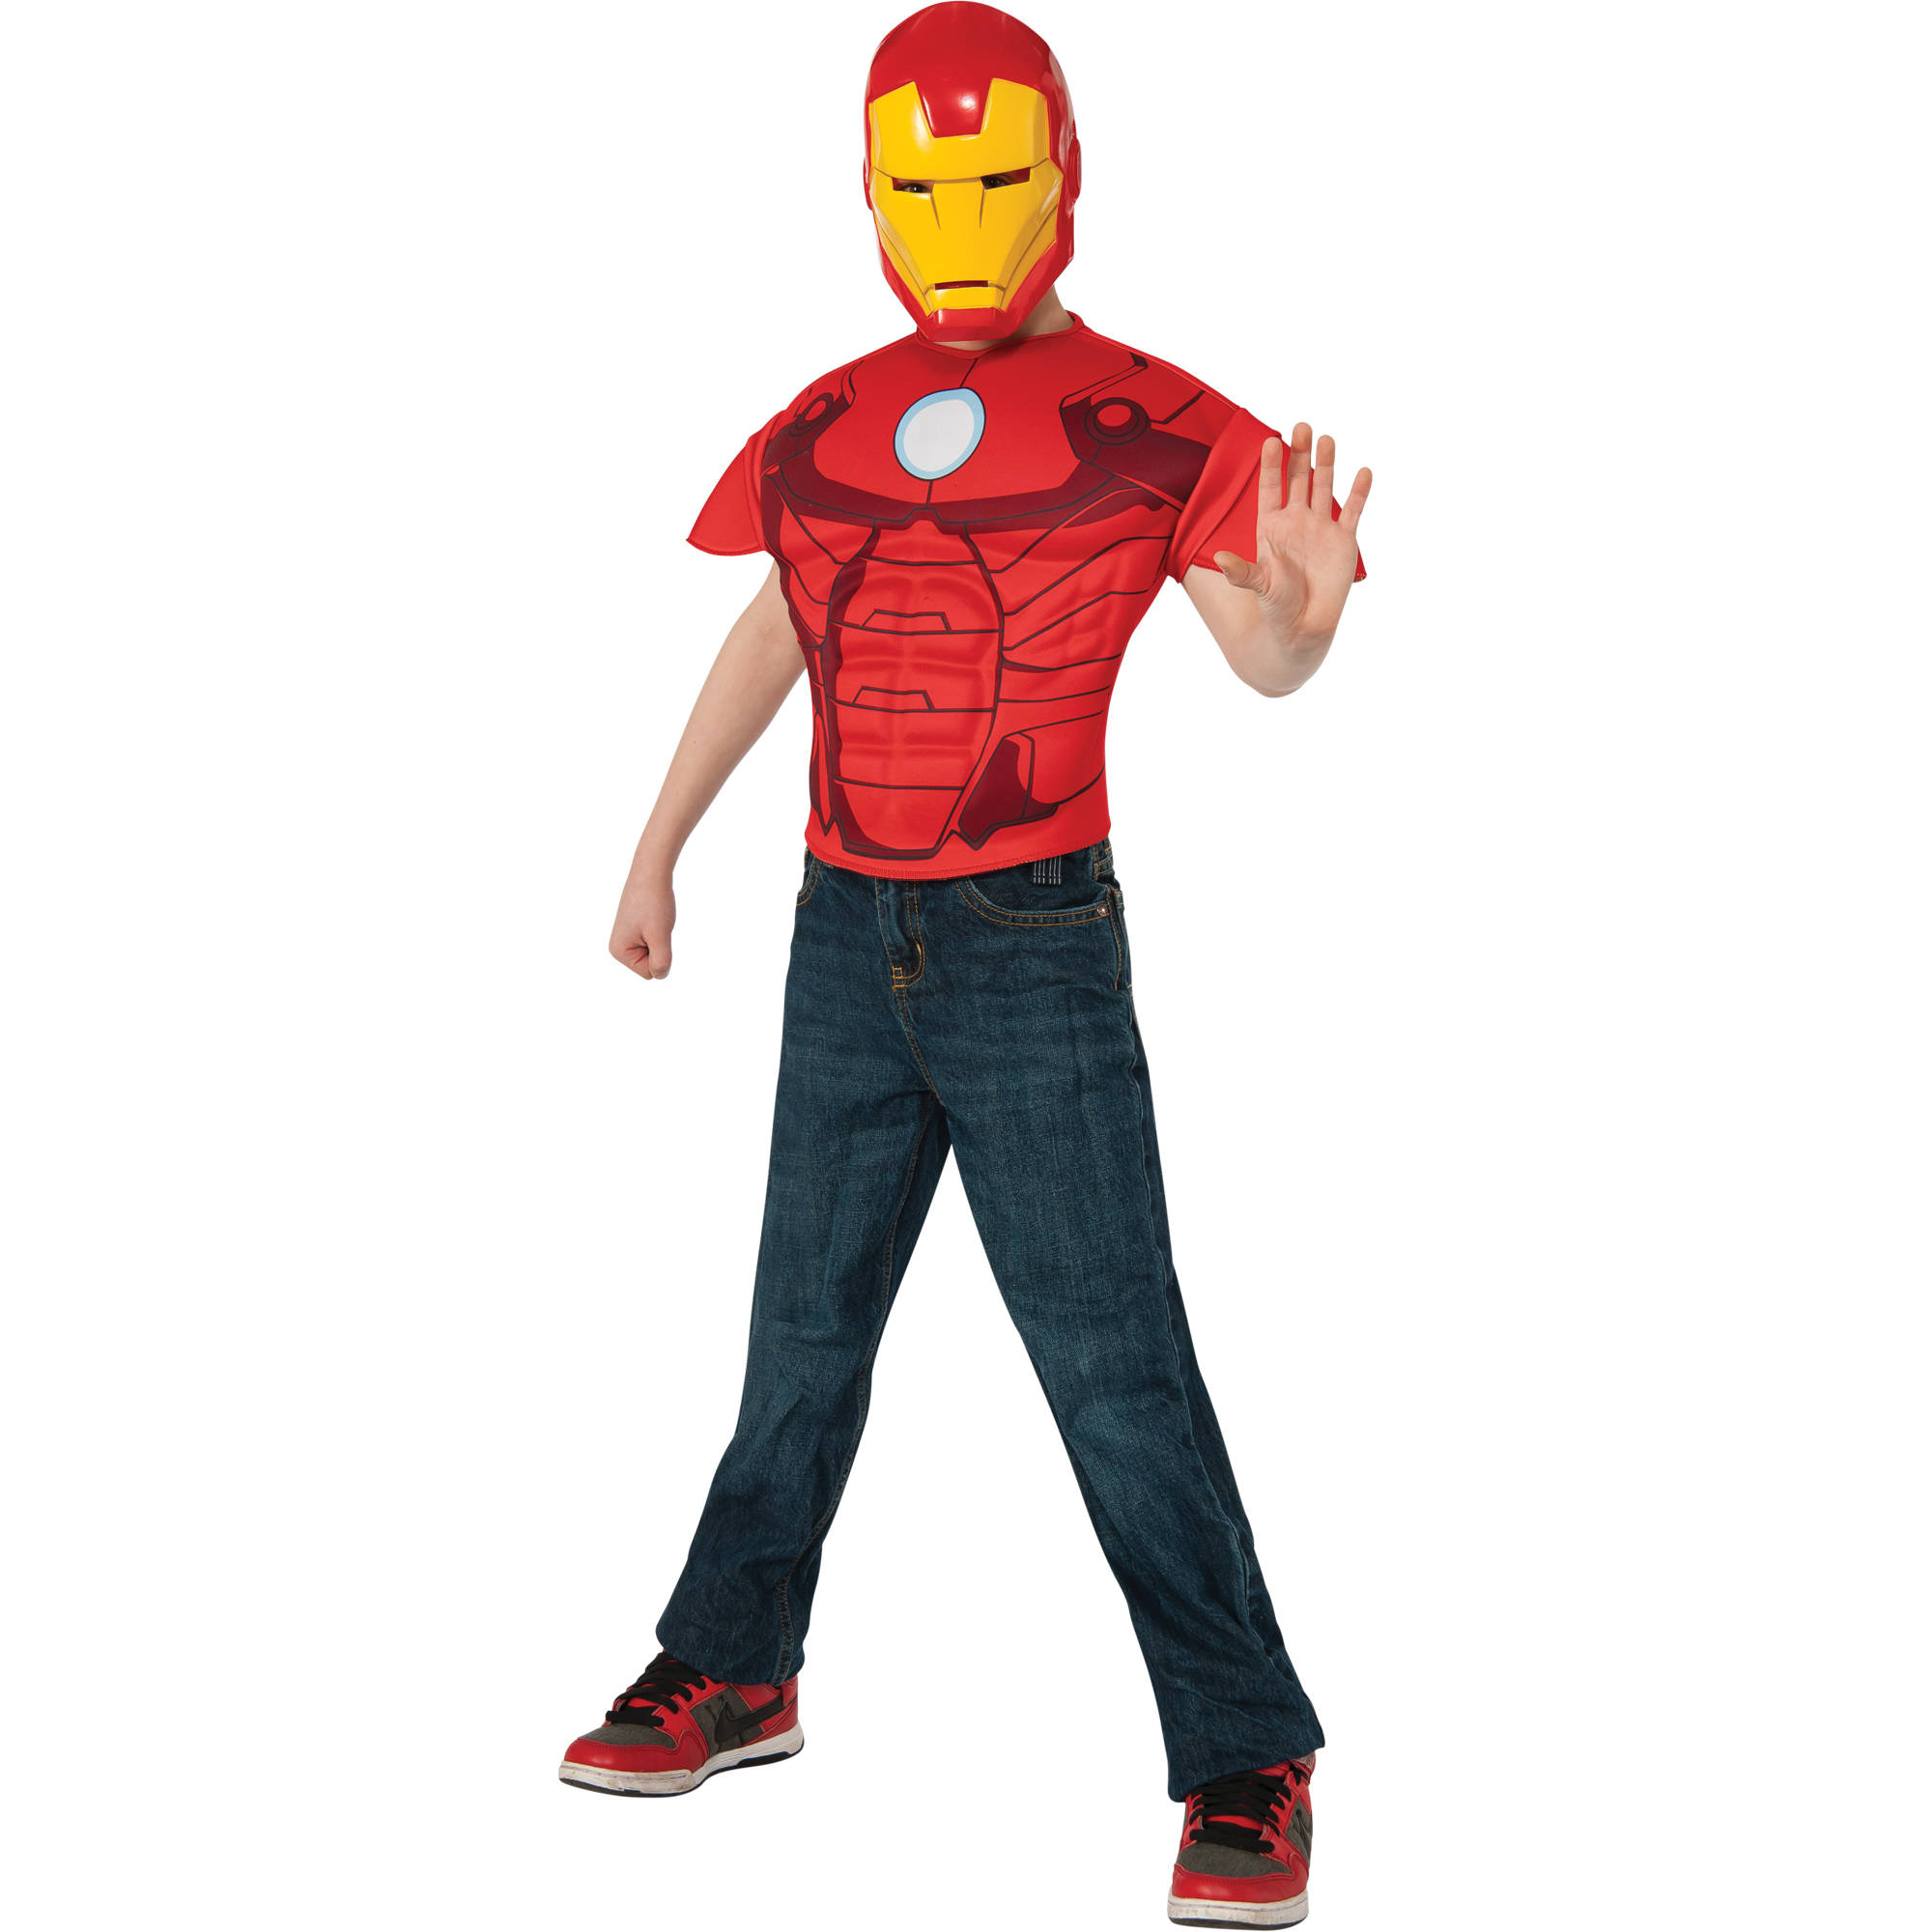 Iron Man Top and Mask Child Halloween Costume, One Size, 8-10